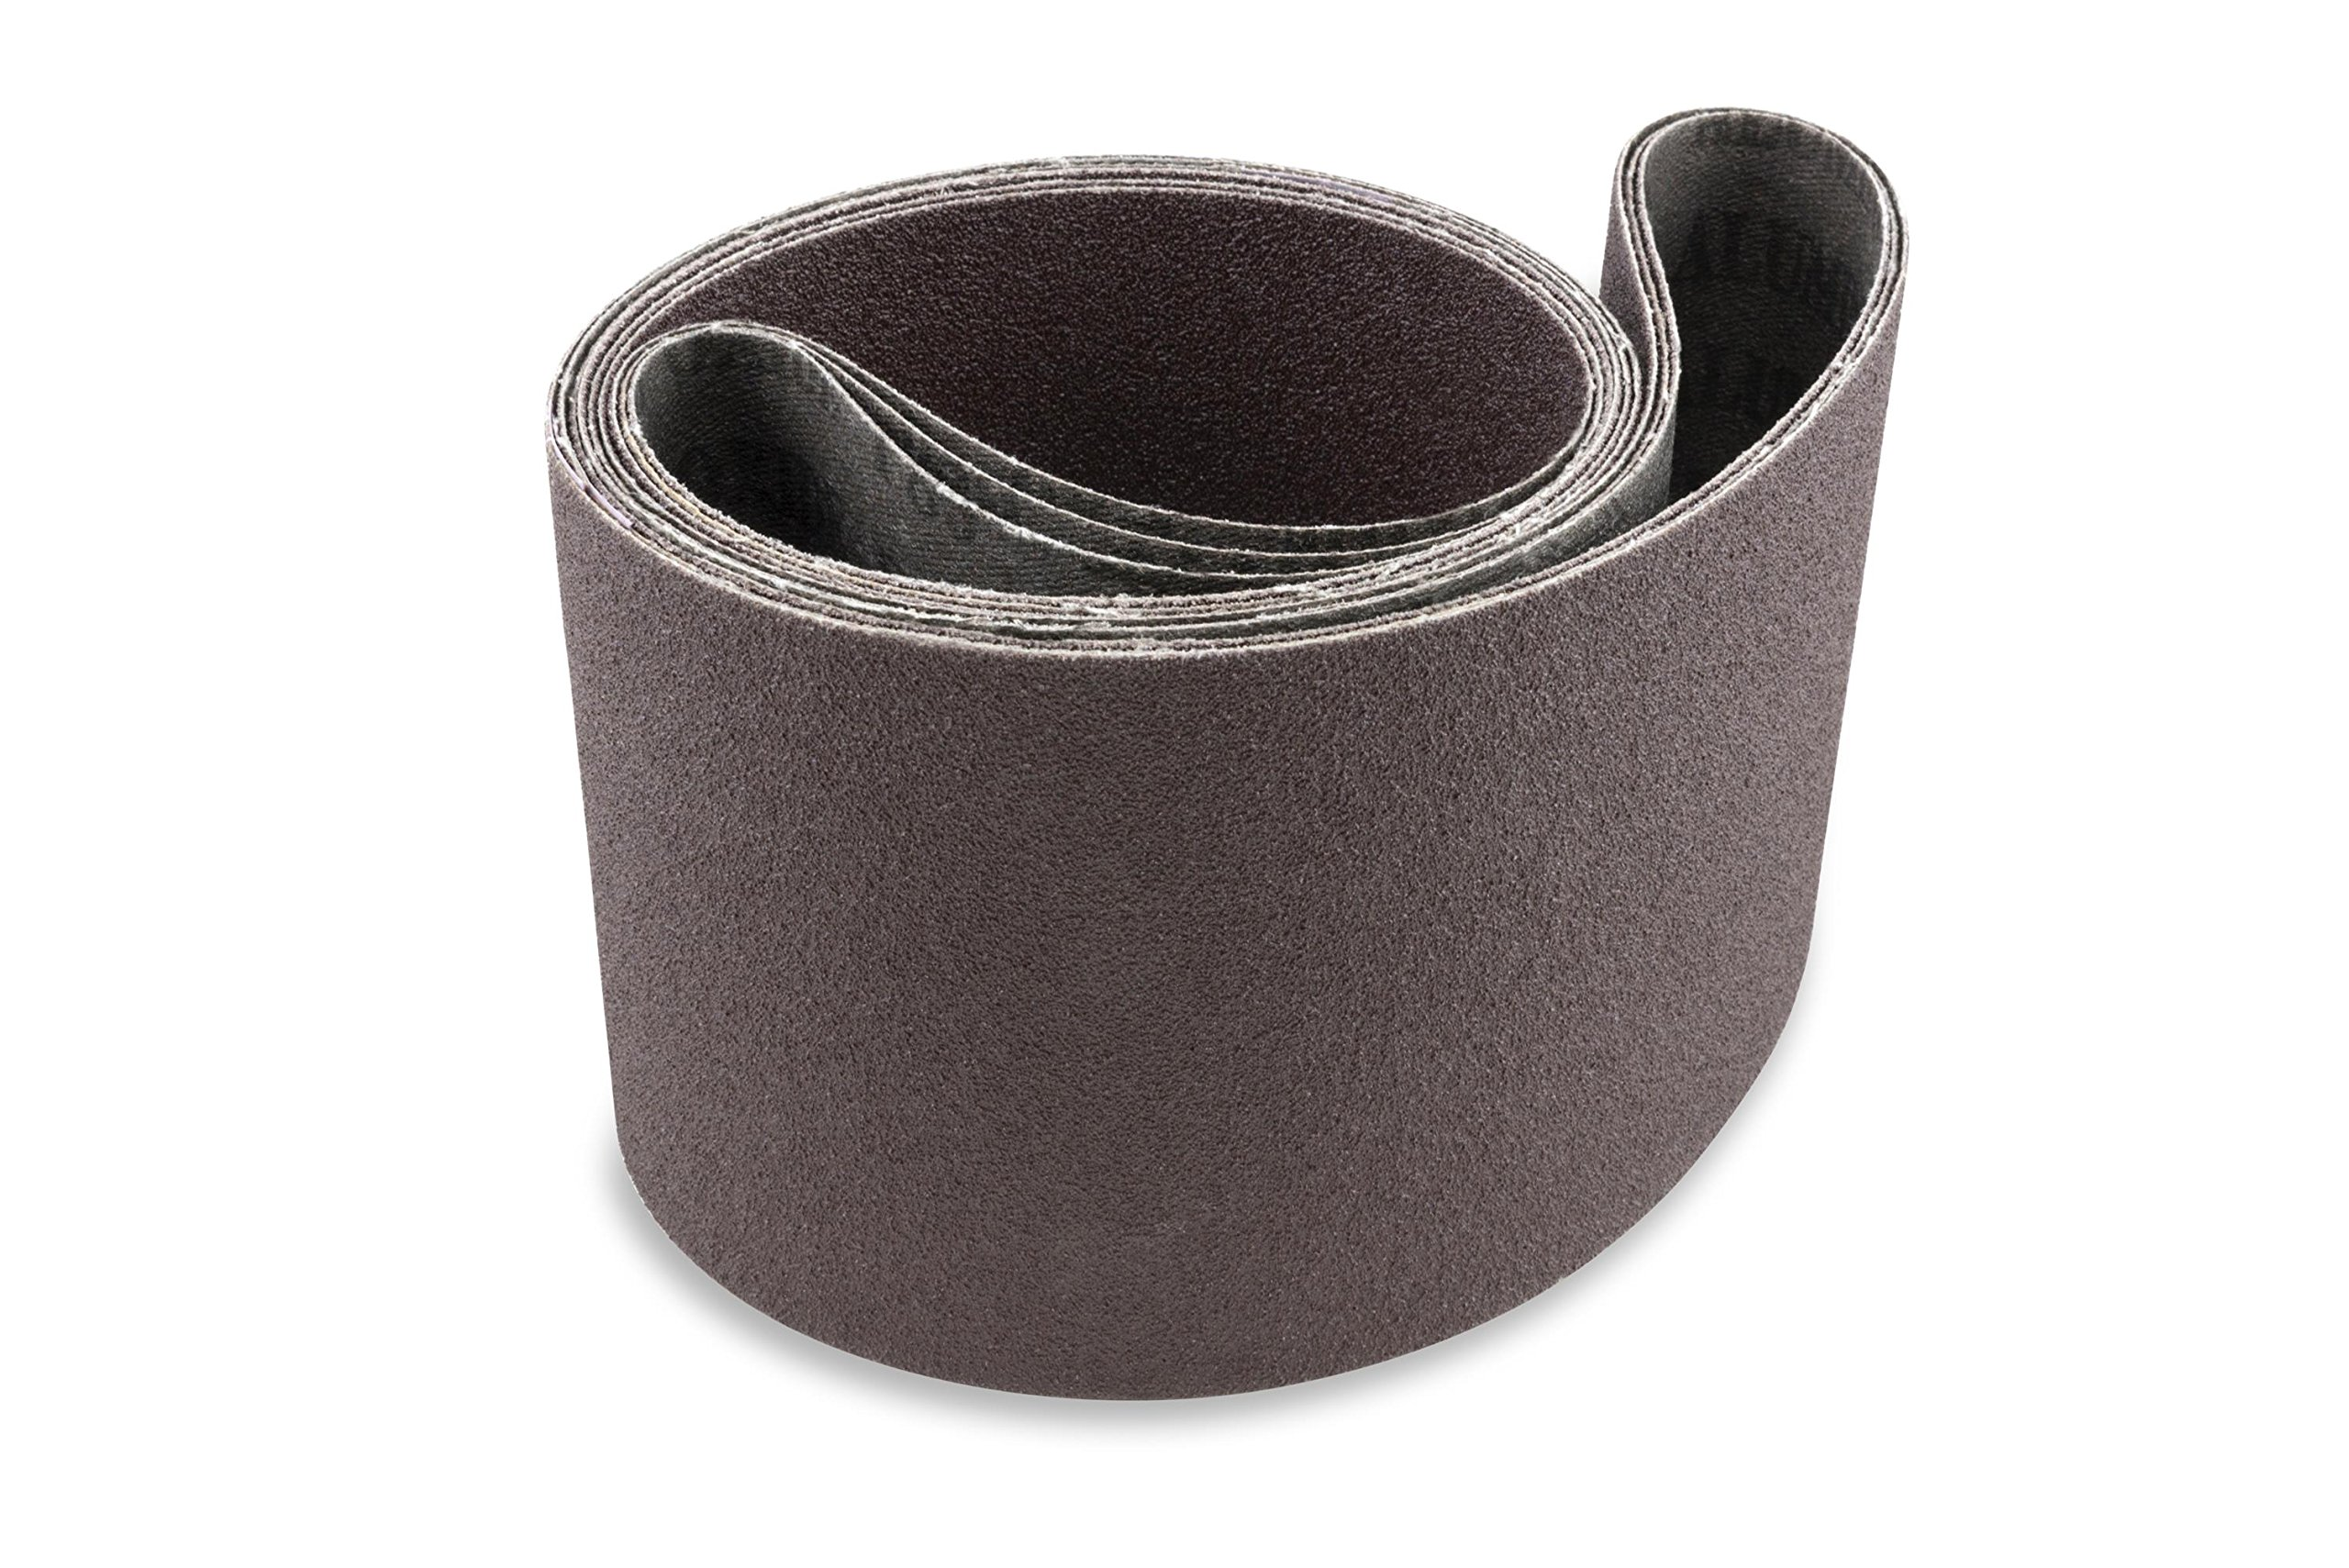 6 X 80 Inch 220 Grit Aluminum Oxide Premium Quality Multipurpose Sanding Belts, 2 Pack by Red Label Abrasives